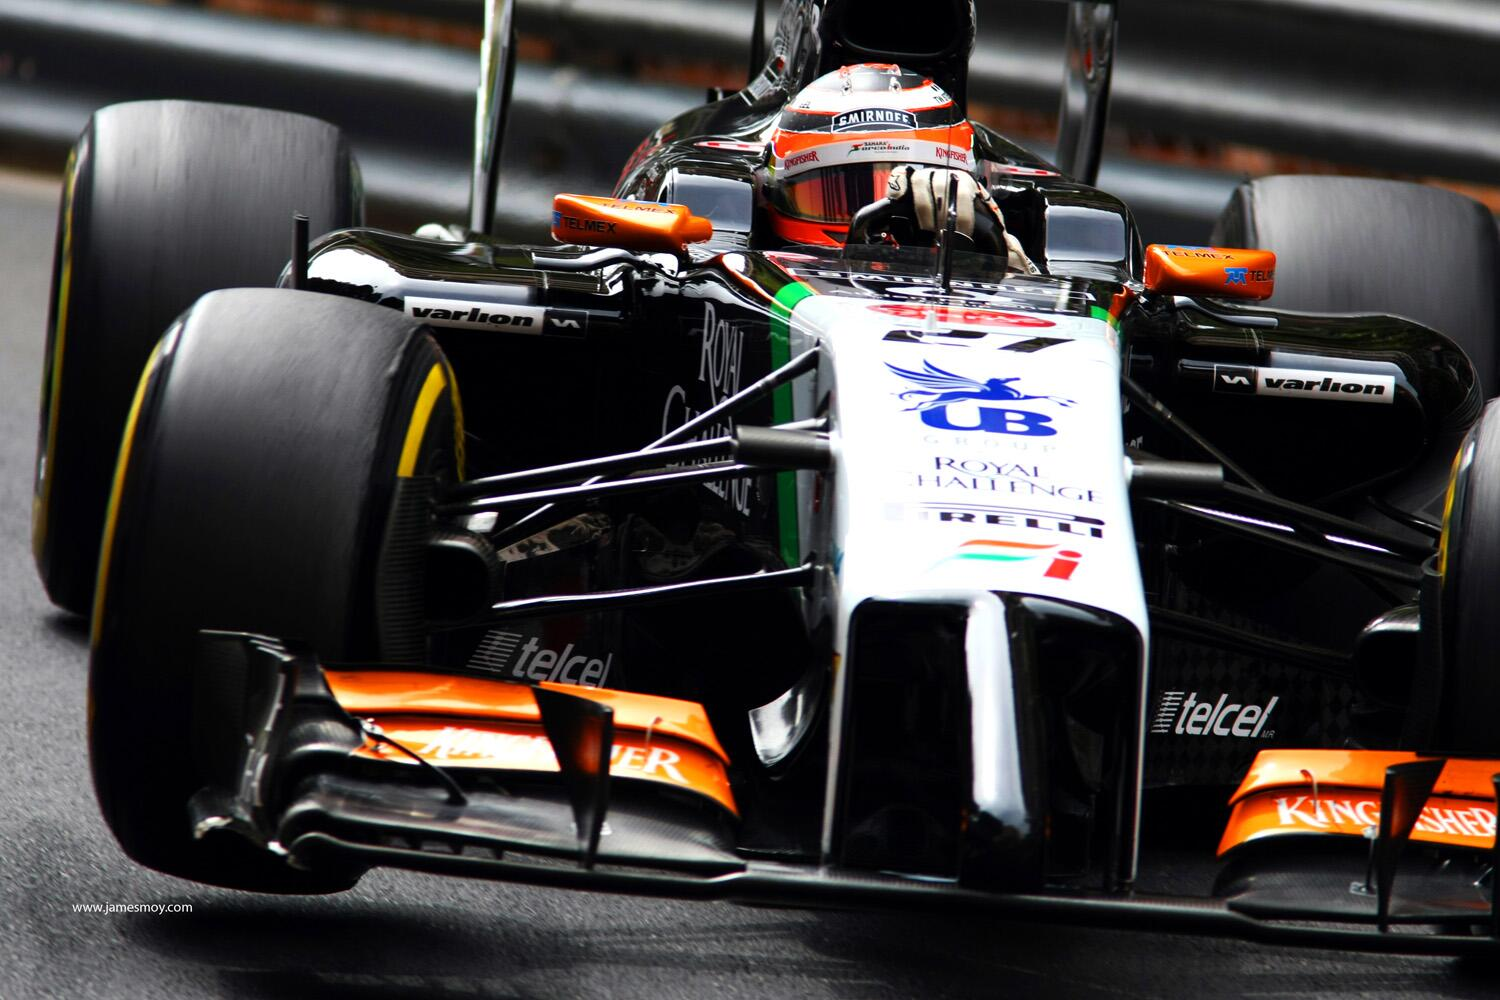 RT @jamesmoy: Great race from @NicoHulkenberg really 'on it' going from 11th to 5th yesterday: http://t.co/lcALmctb08